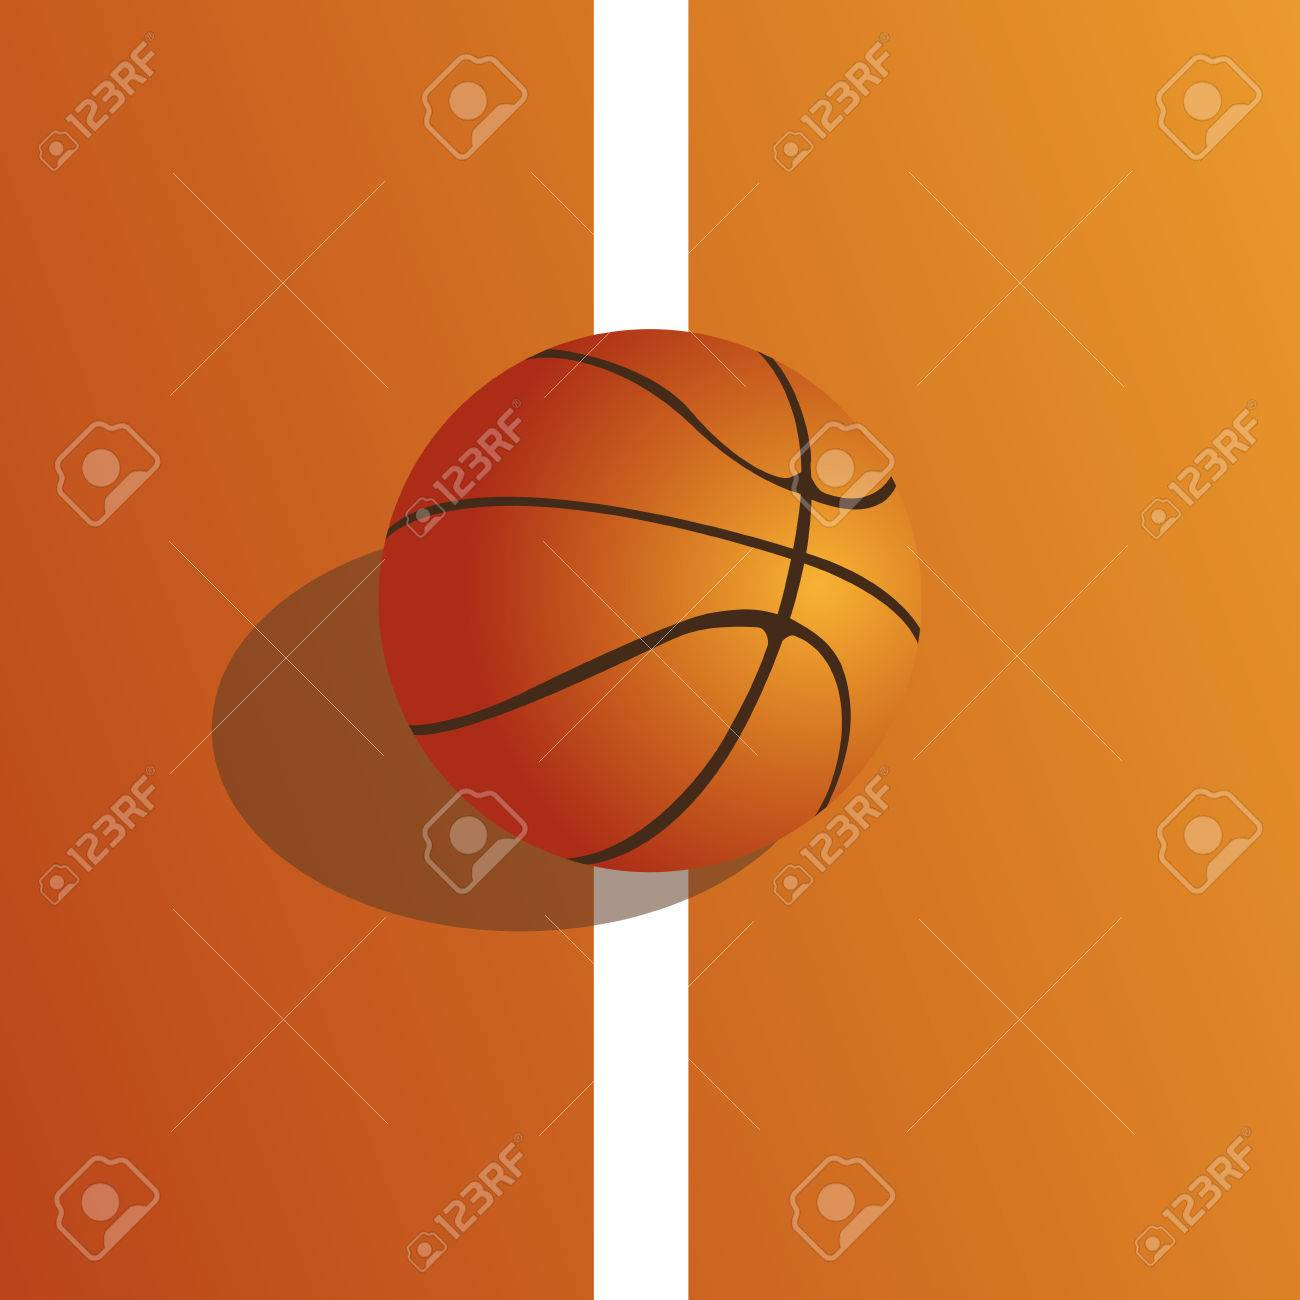 Basketball Ball A Colored Background With A Basketball Ball On The Field